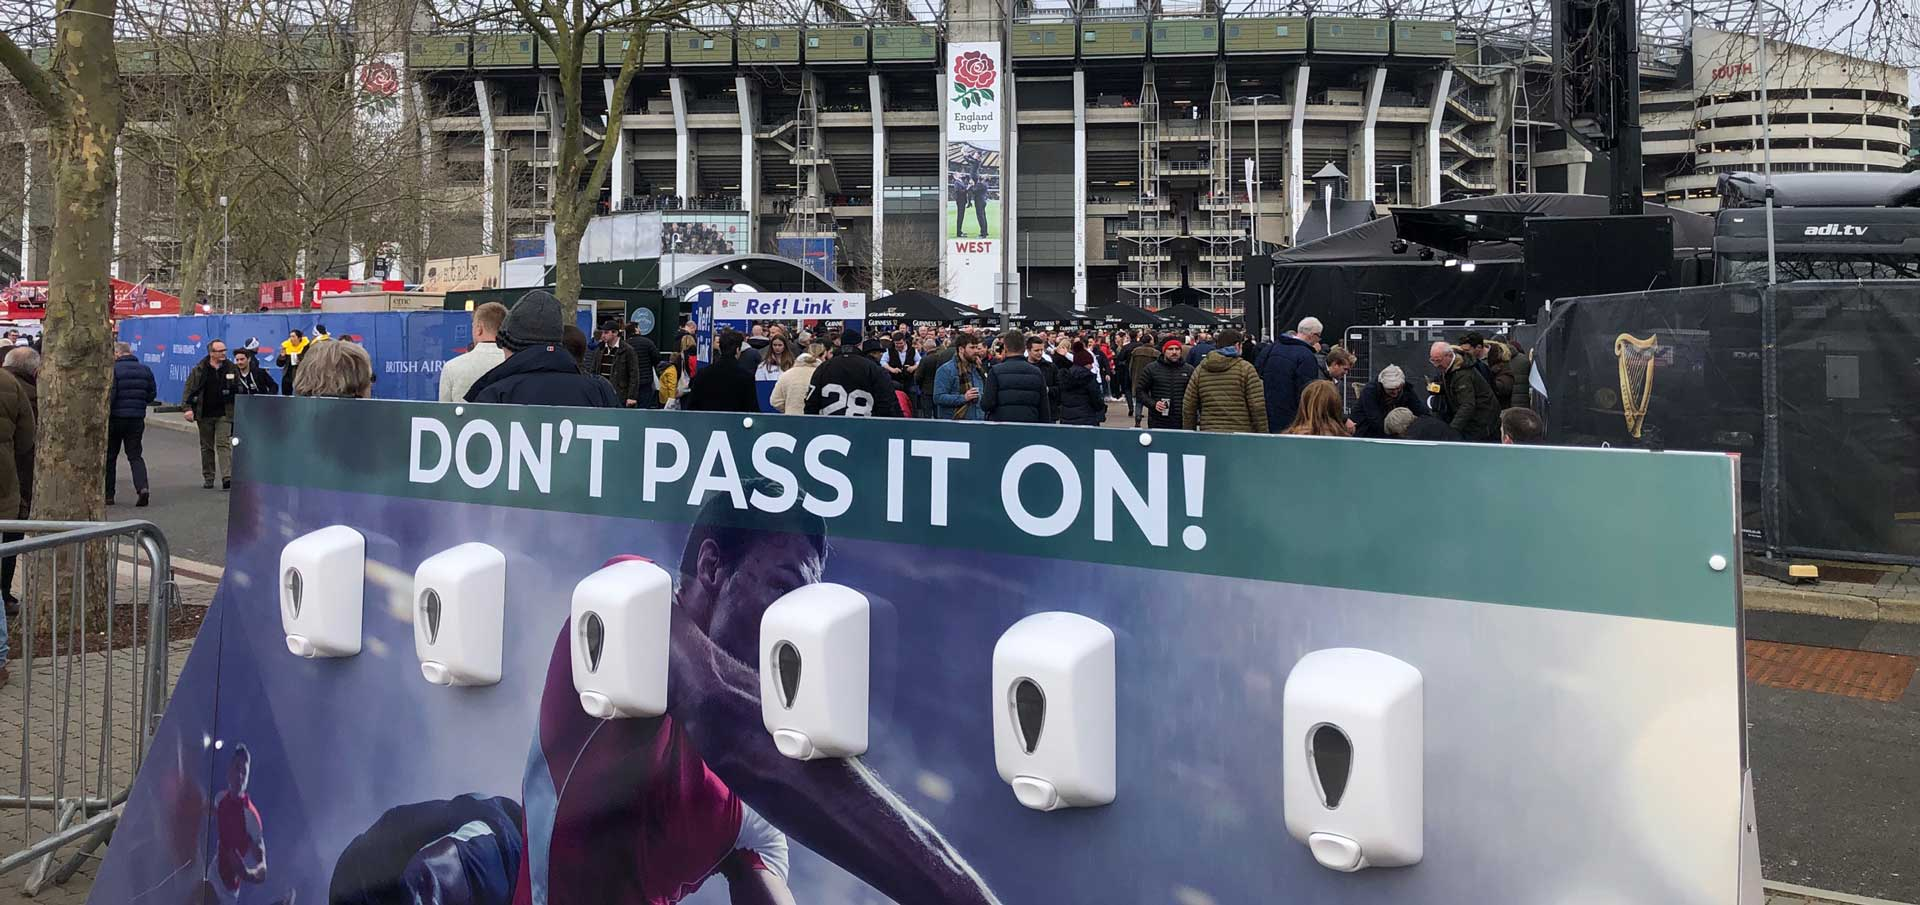 hand sanitiser stations at rugby six nations twickenham